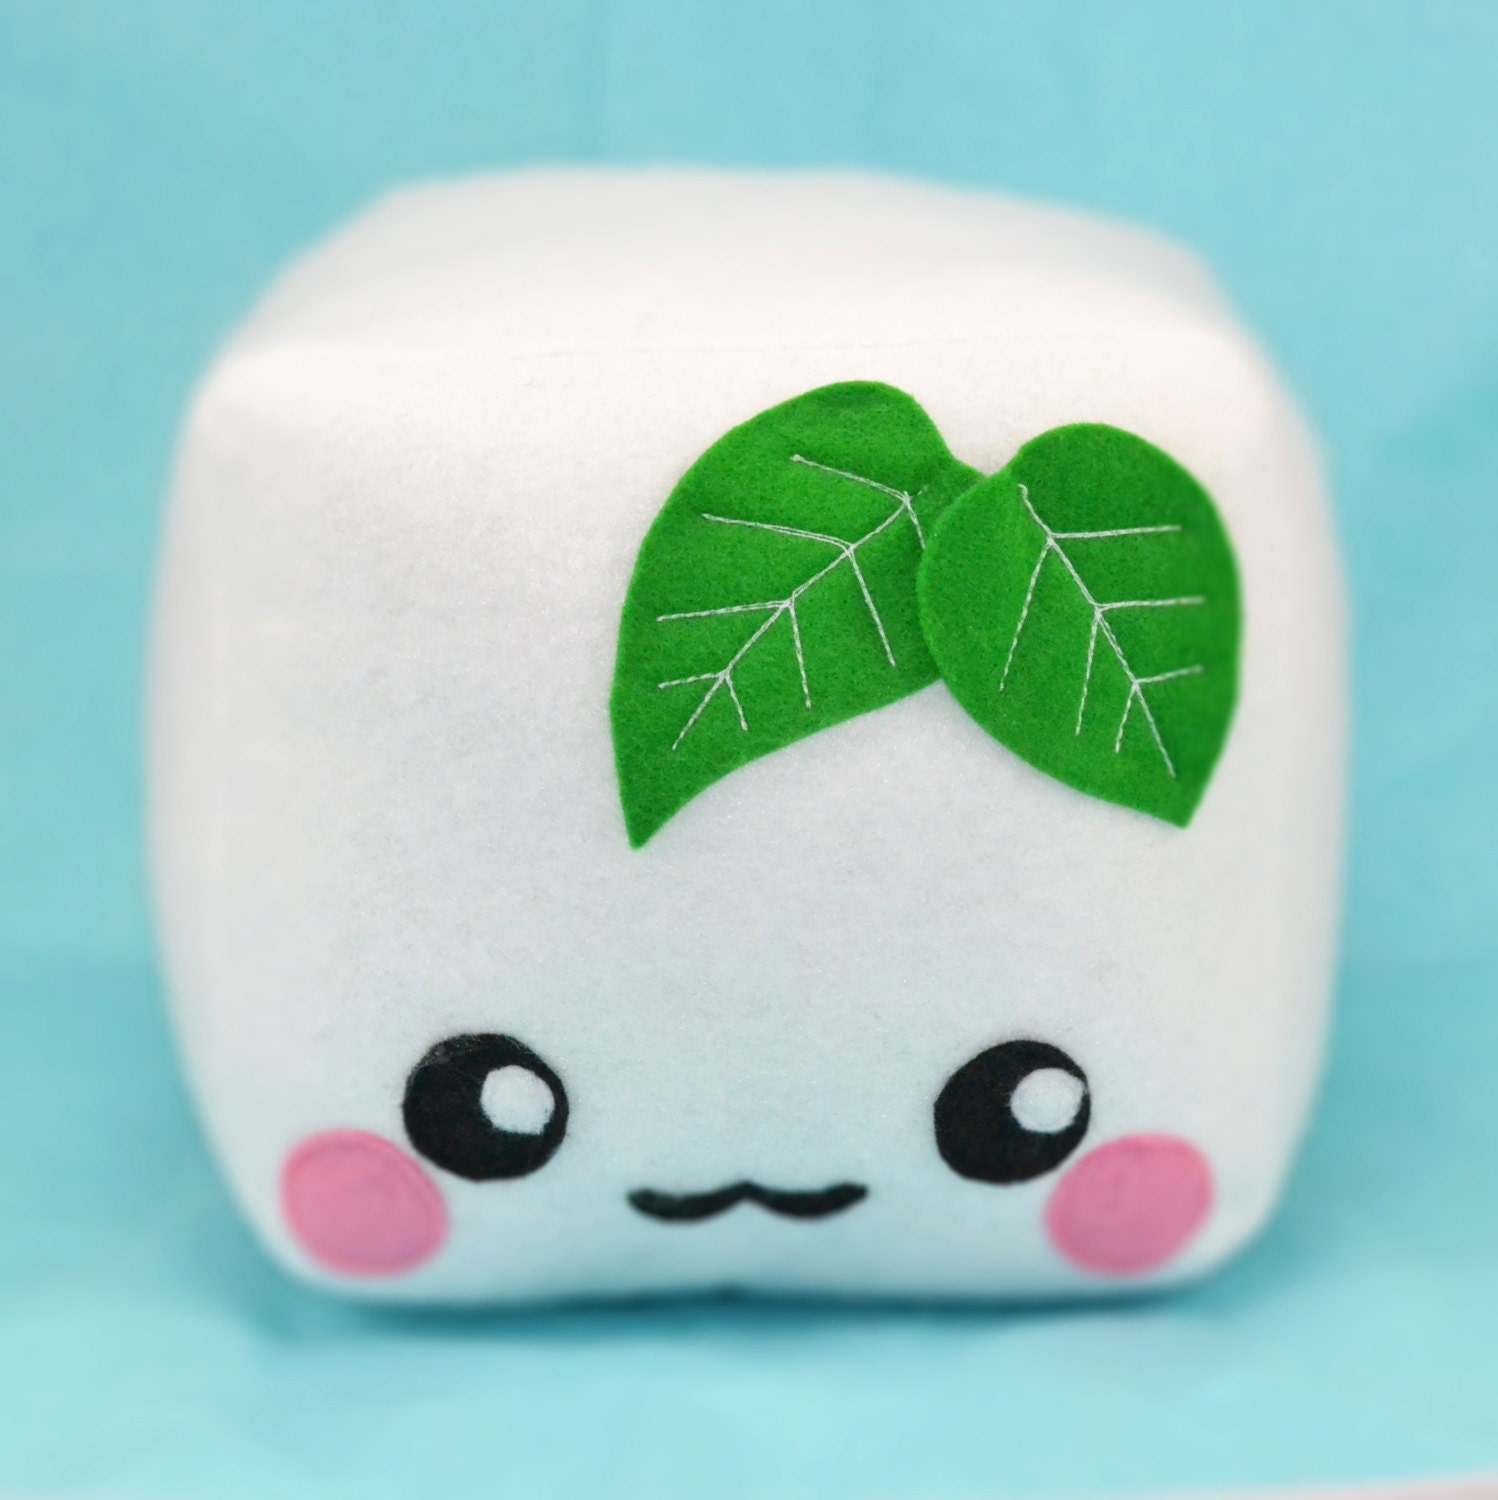 Cute Tofu Pillow : Tofu plush toy pillow cushion plushie food pretend play kawaii